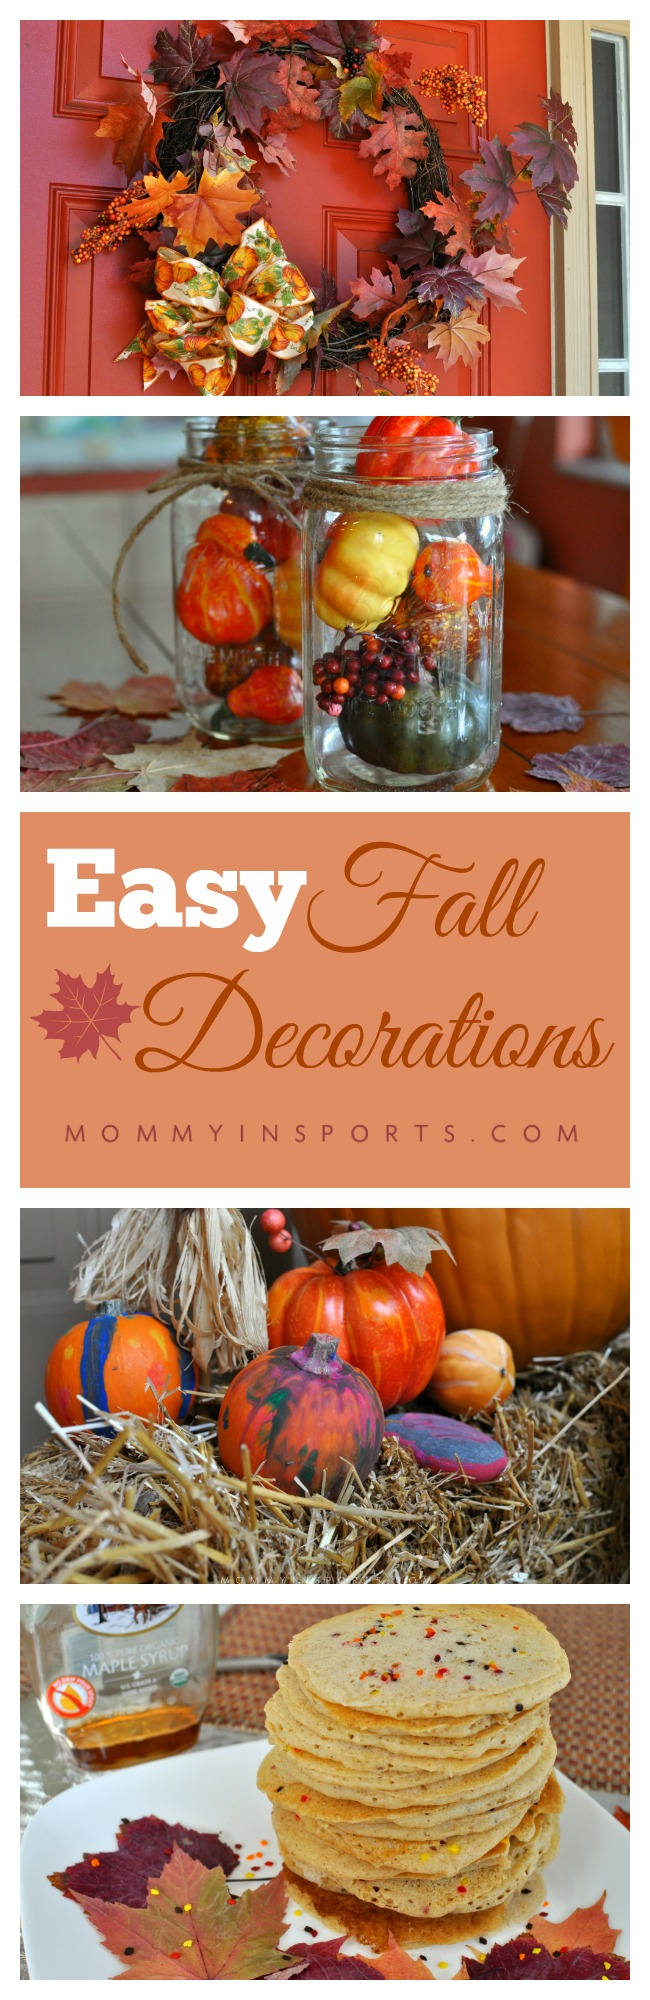 Easy Fall Decorations pin